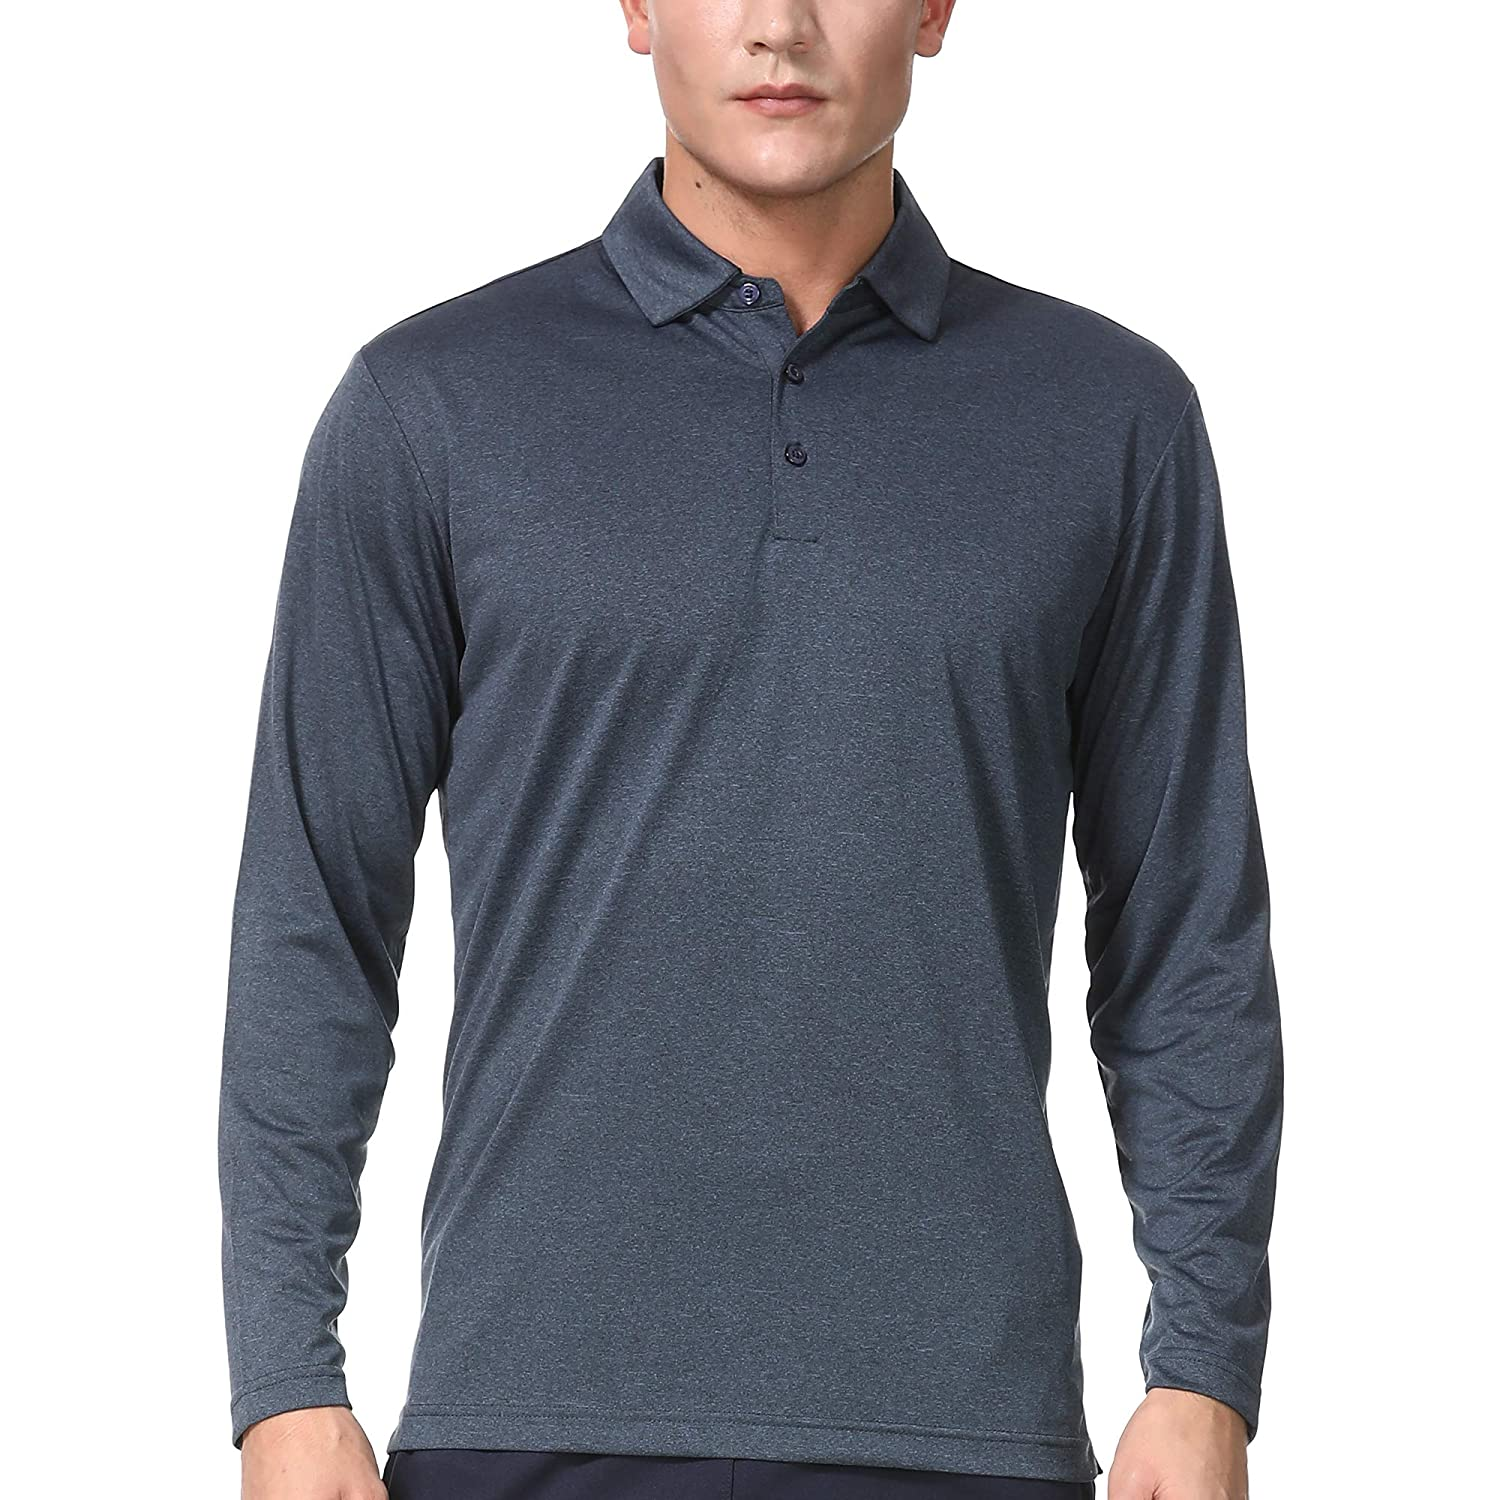 Mens Long Sleeve Polo Shirts Dry Fit Athletic Golf T Shirt For Men